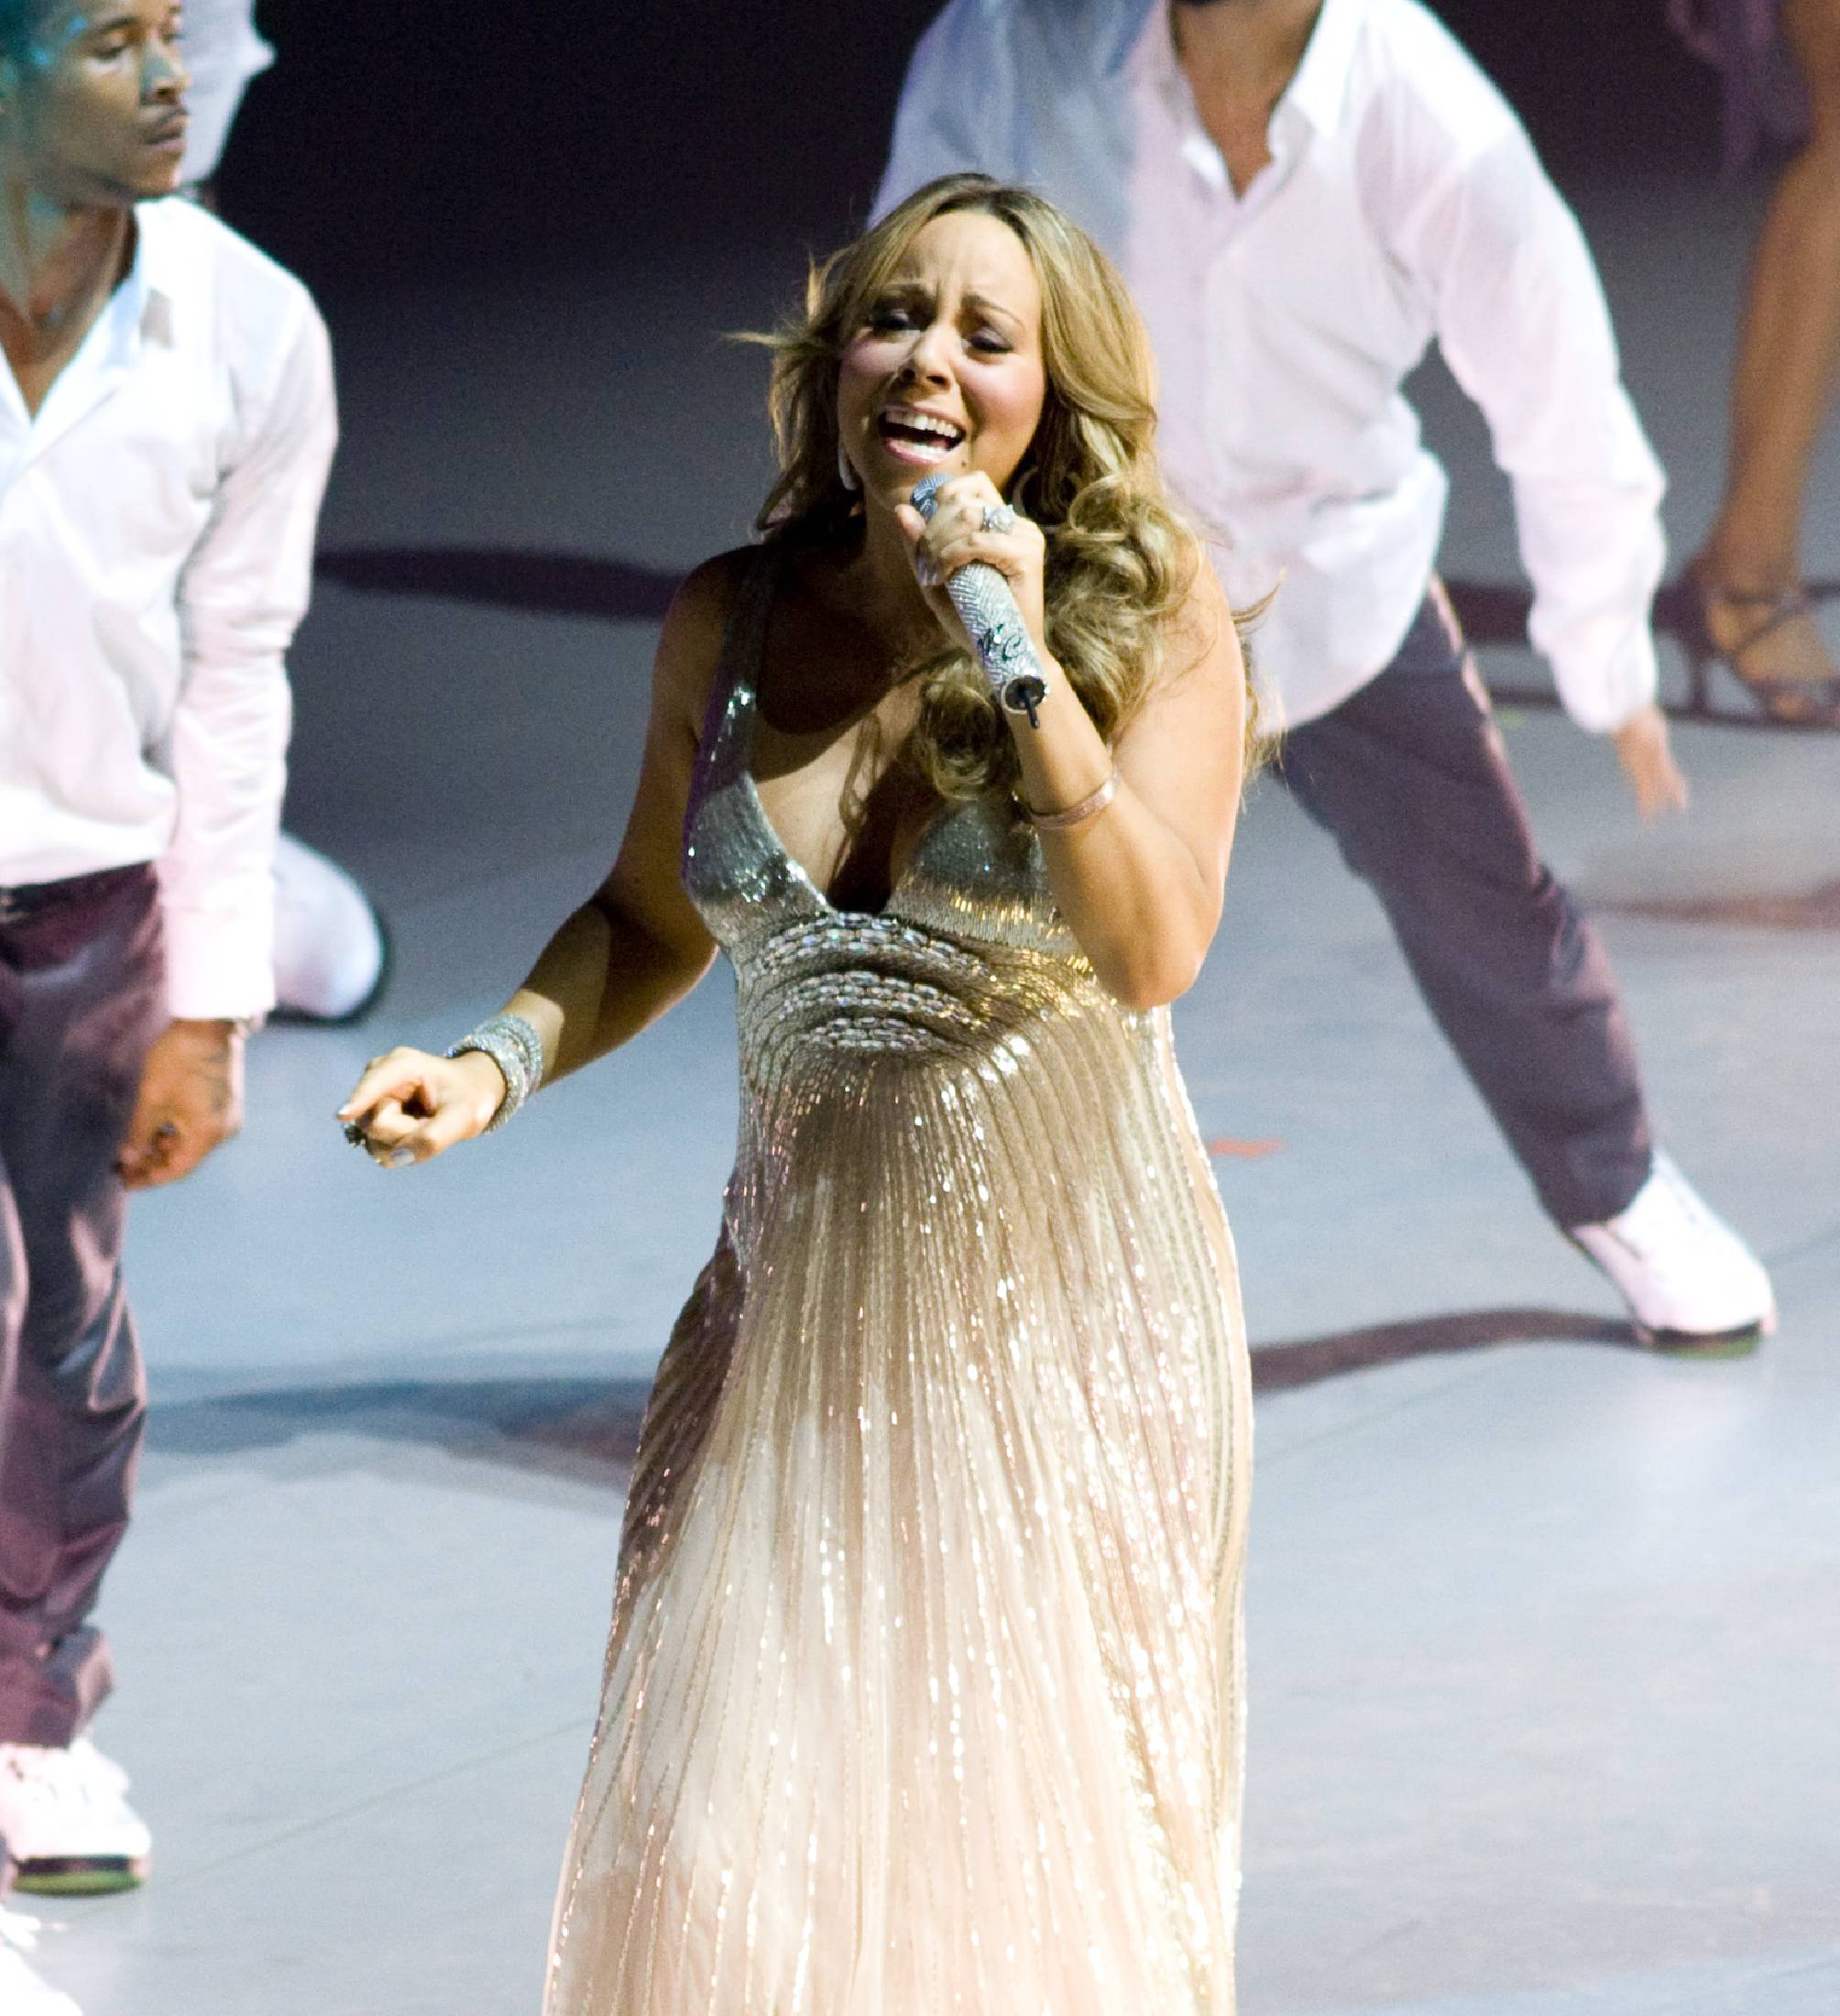 53710_Mariah_Carey_performs_at_Madison_Square_Garden_in_New_York_City-8_122_438lo.jpg